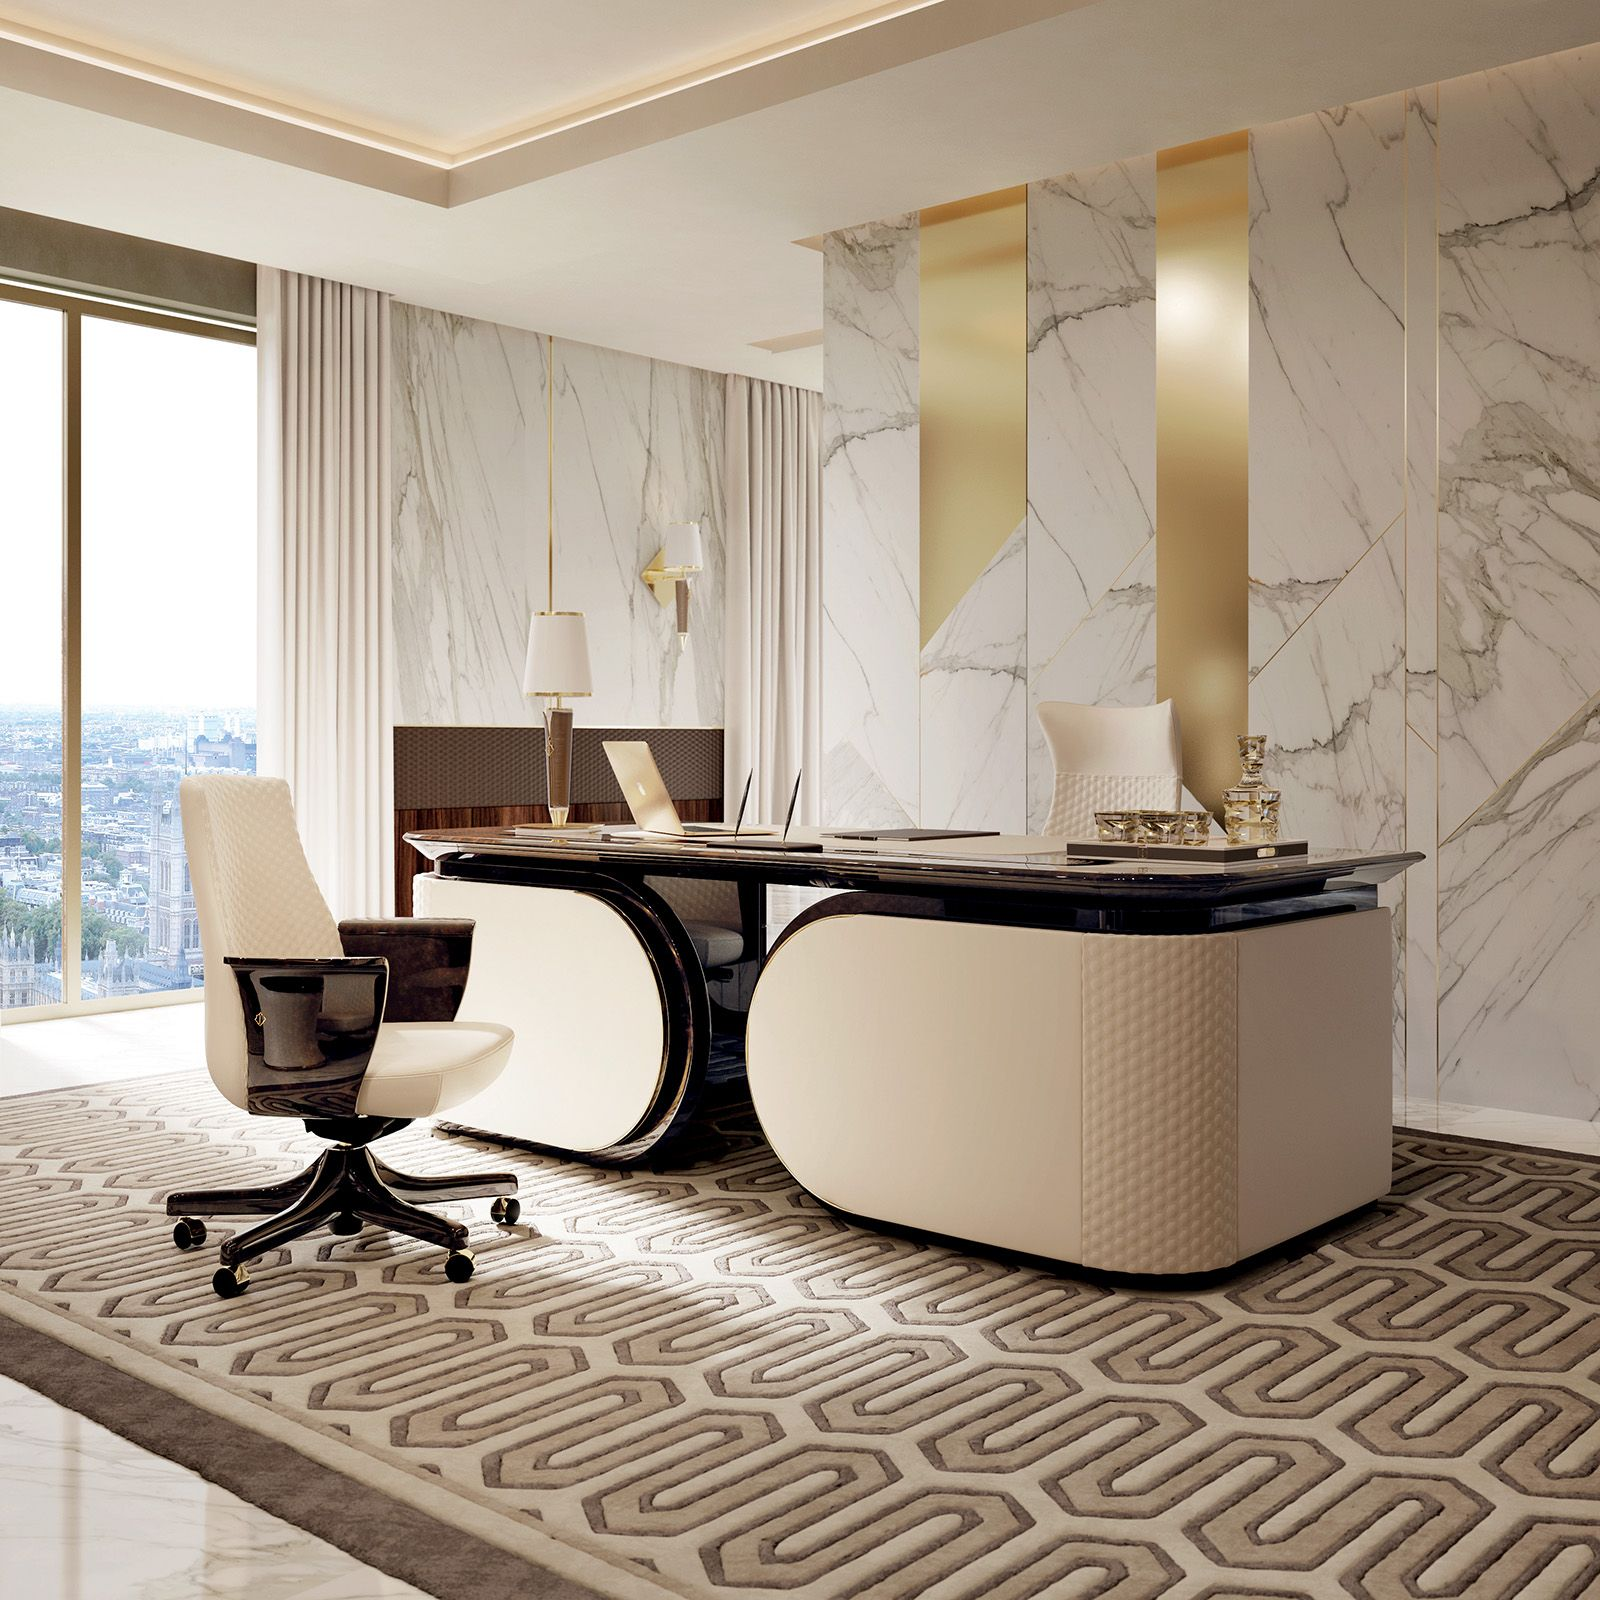 Vogue collection italian luxury office desk for Interior design for office furniture